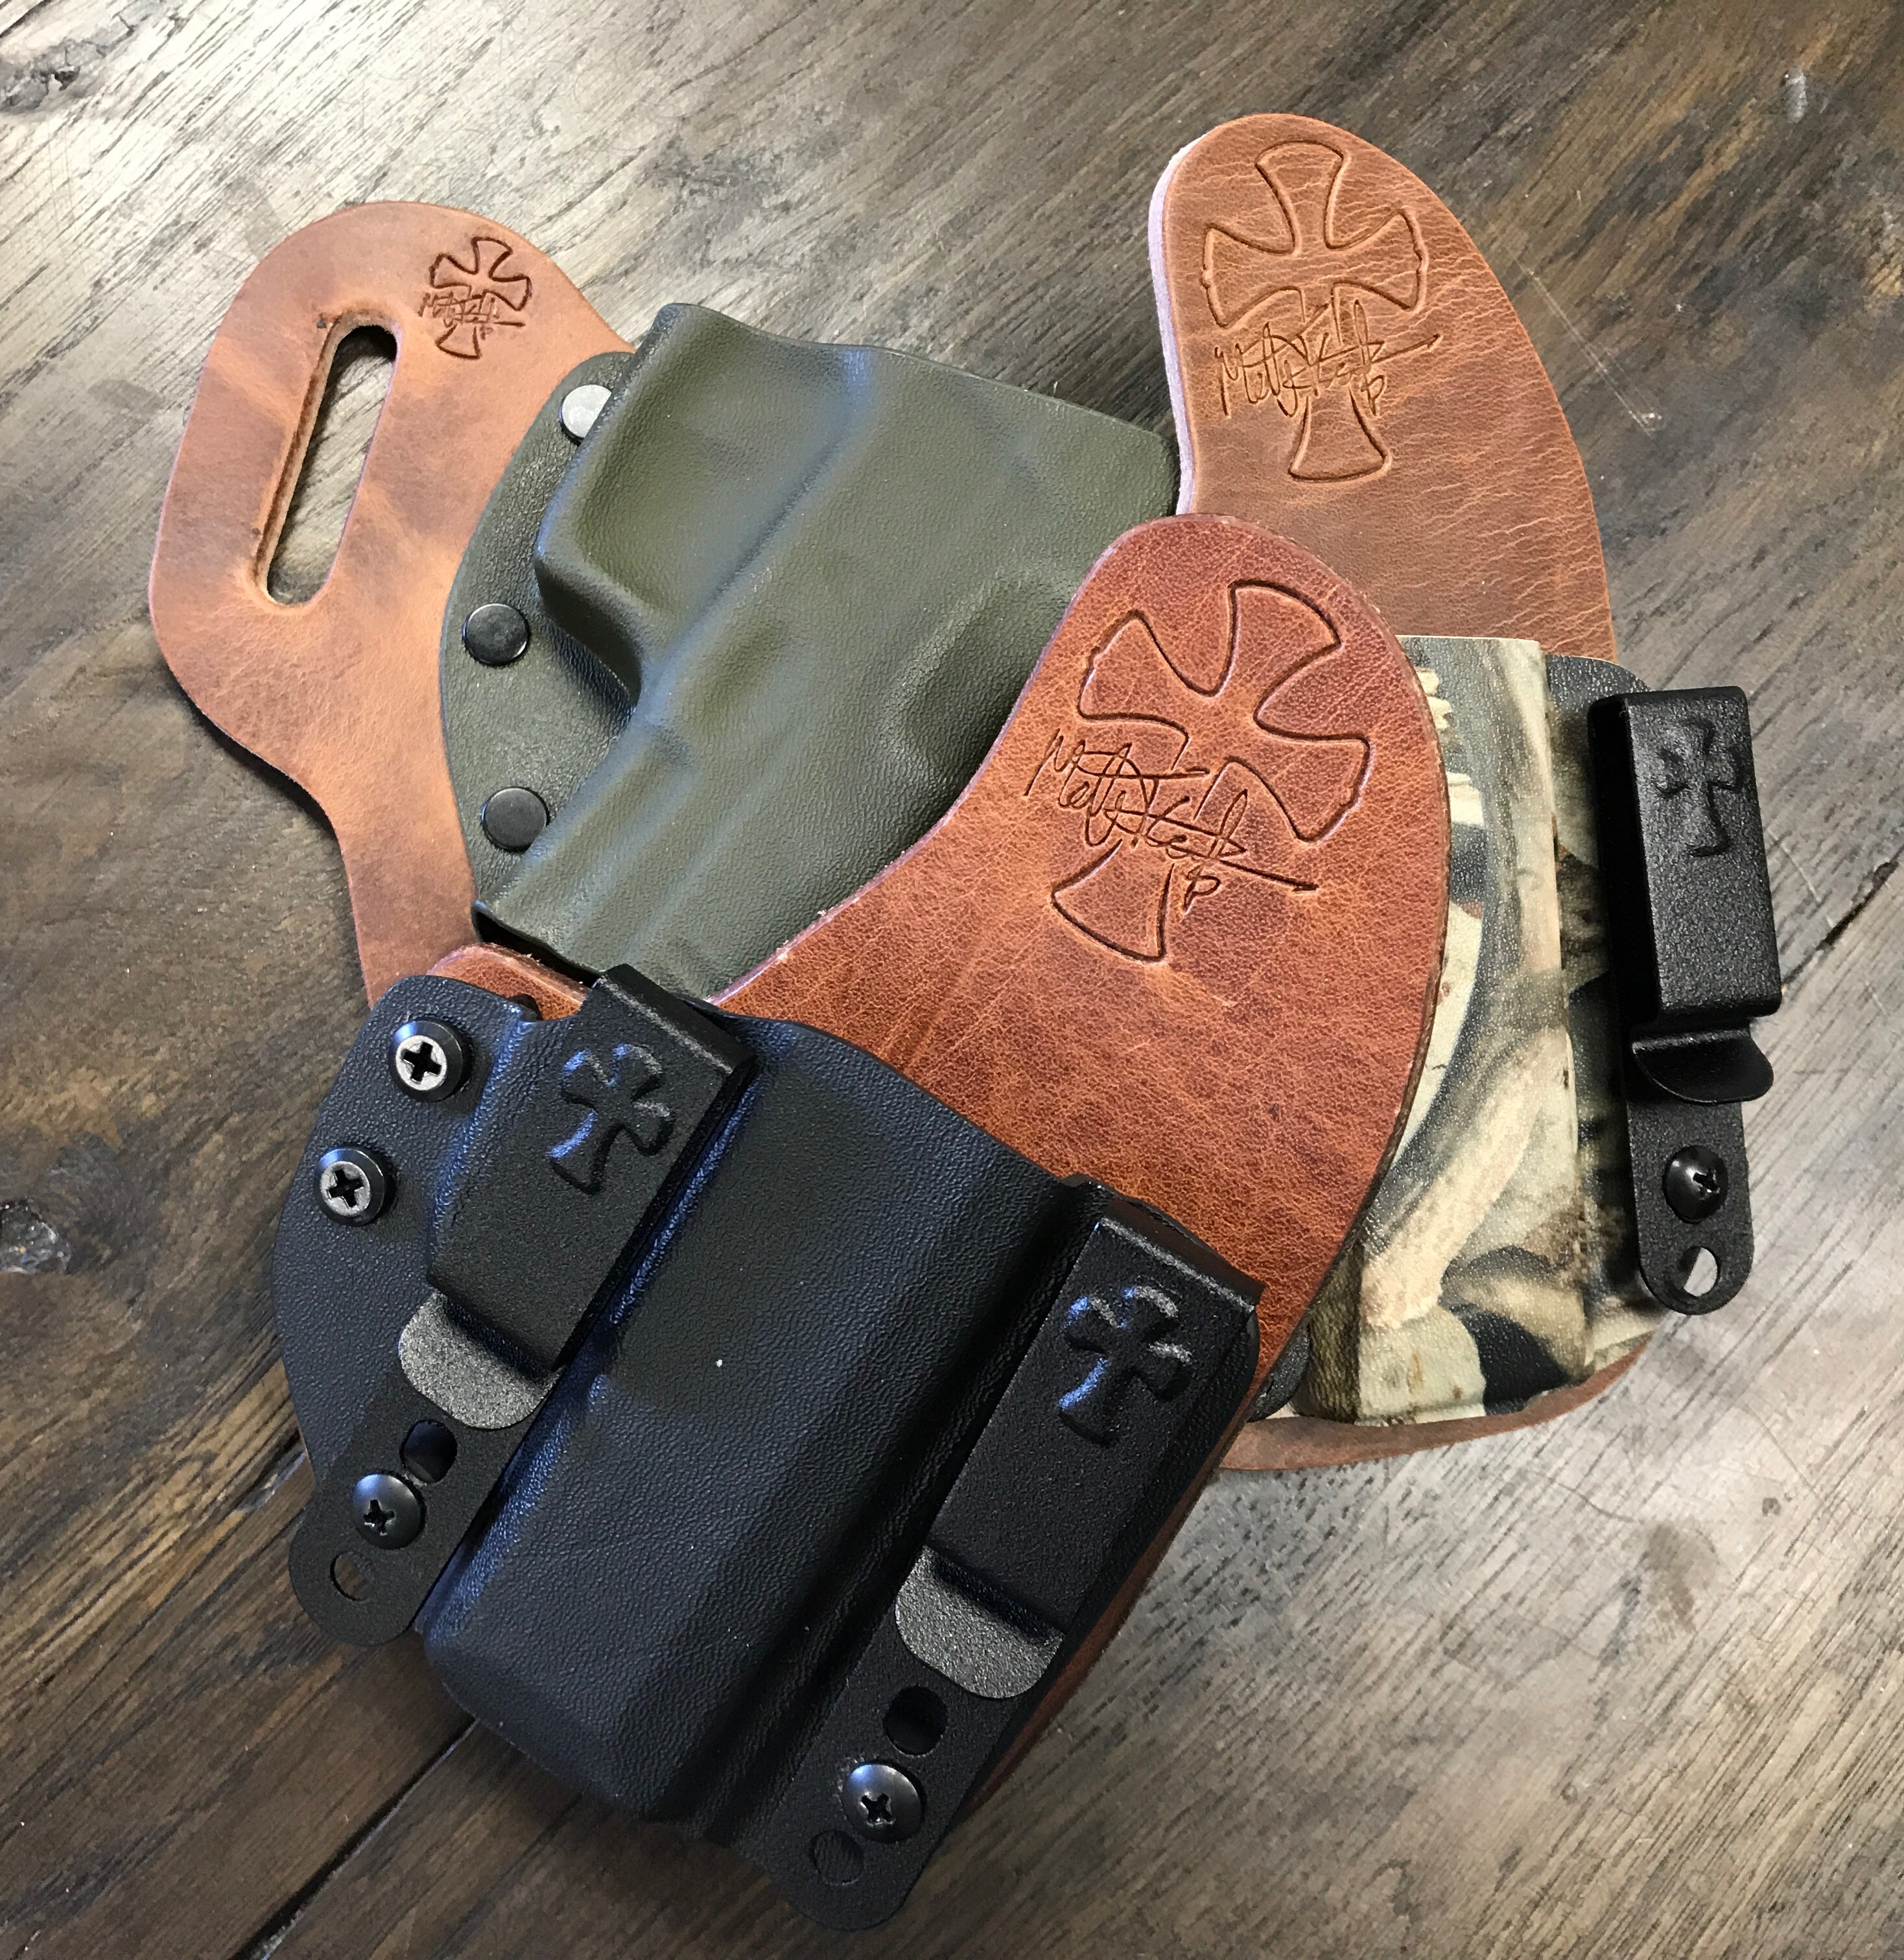 Founder's Series Leather, premium leather, hybrid holster, hybrid holsters, best holsters, concealed carry, best concealed carry holster, hybrid holsters, owb, iwb, premium hybrid holsters, best holster